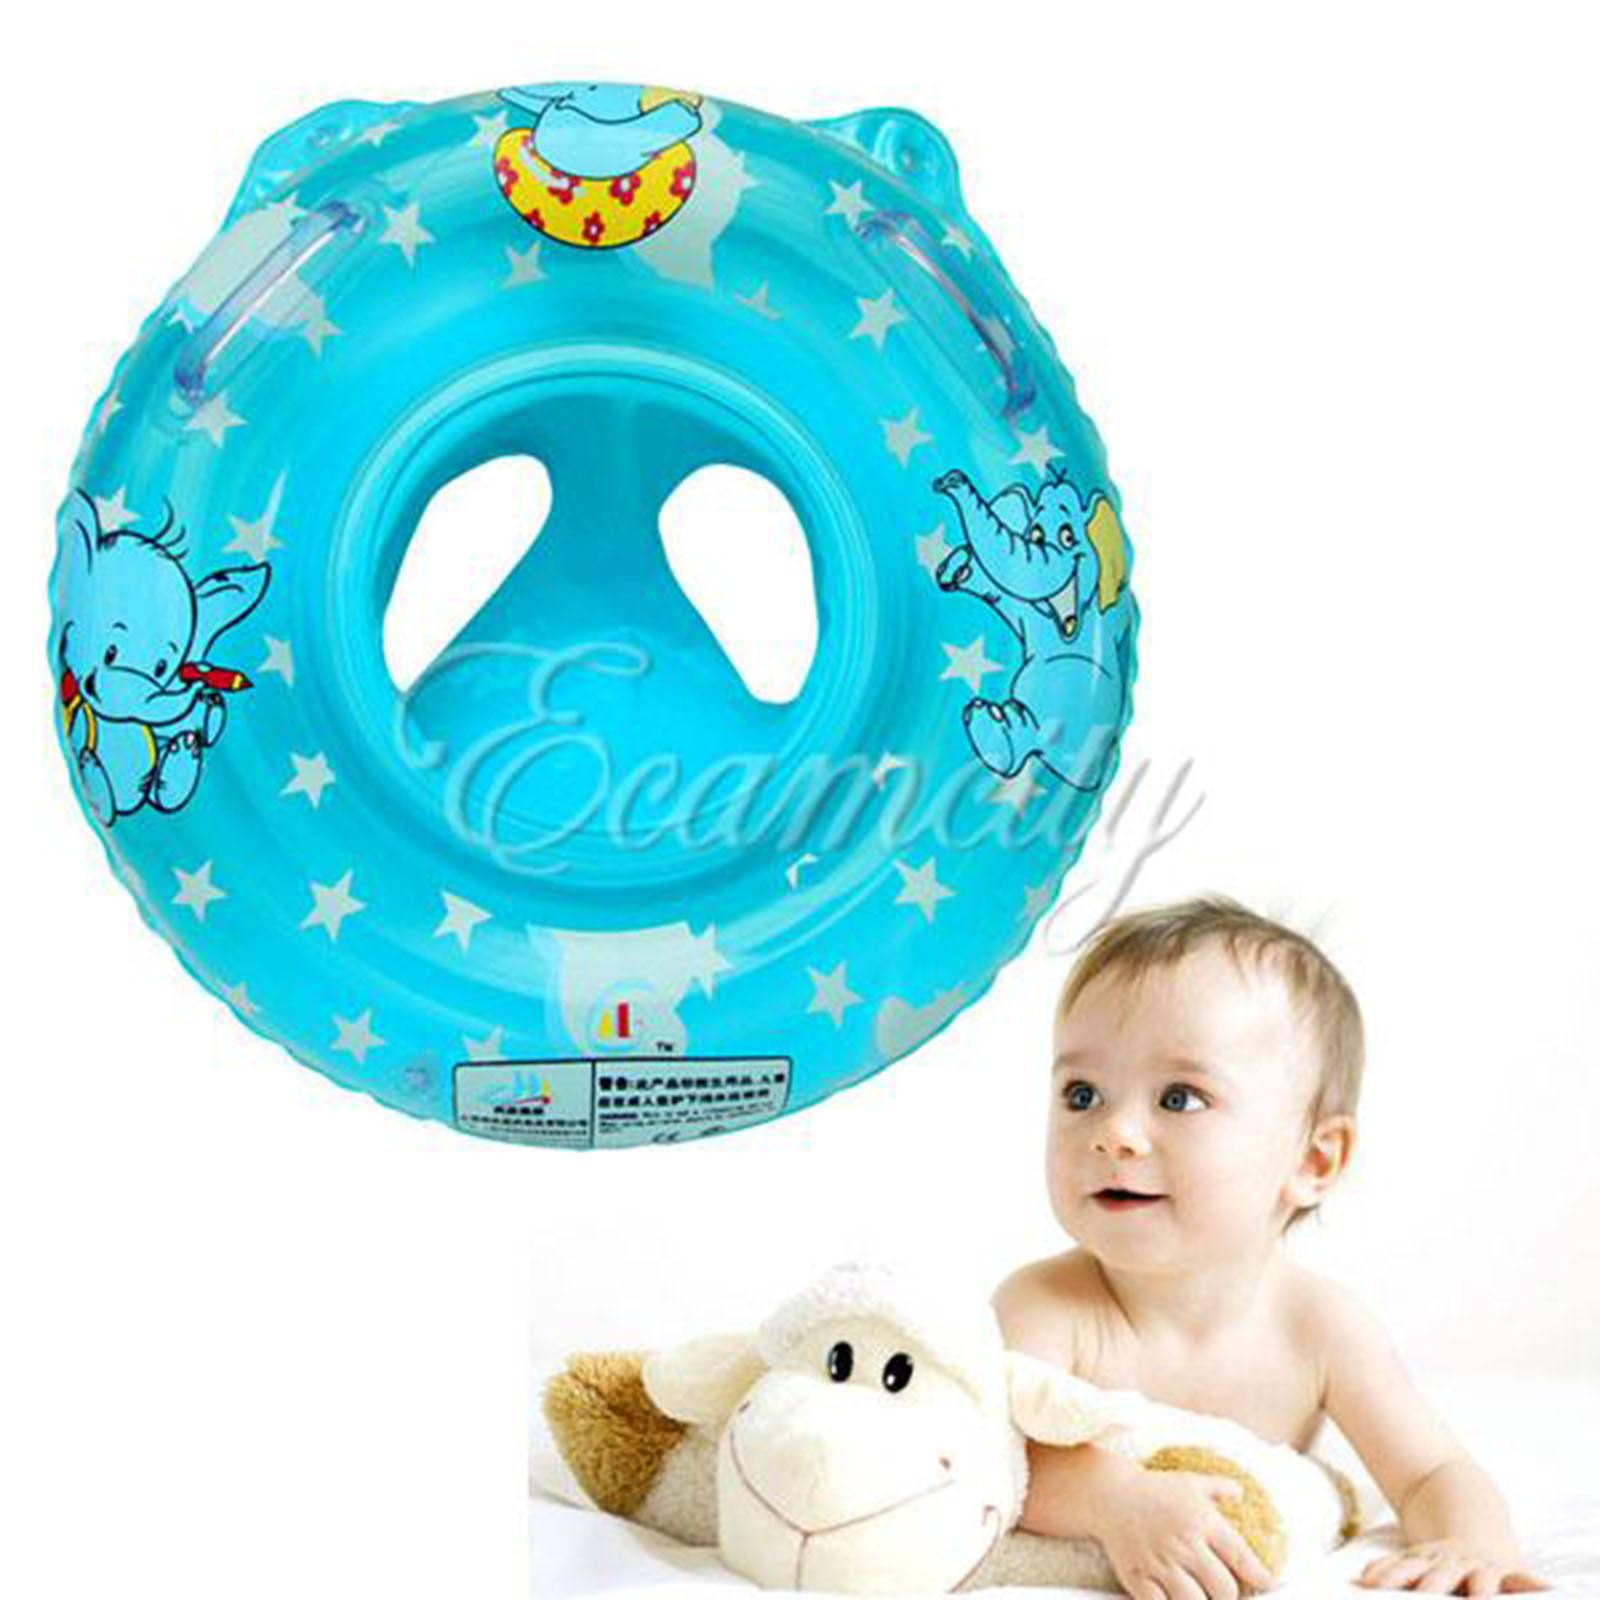 New Baby Child Inflatable Pool Water Swimming Toddler Safety Aid Float Seat Ring